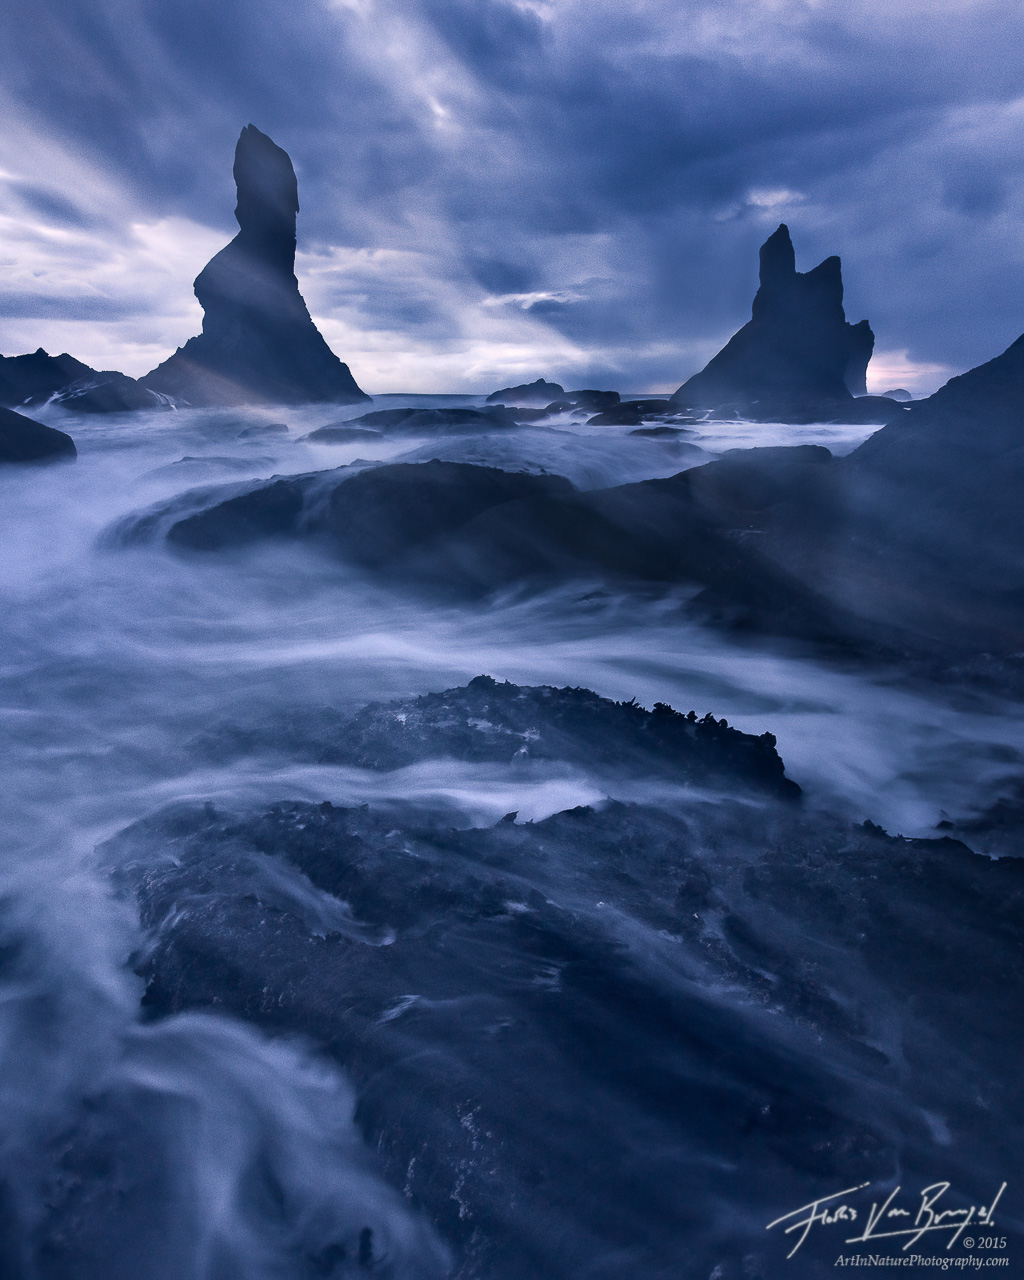 Storm on the Coast, Olympic National Park, Washington, Poseidon's Wrath, wave, photo